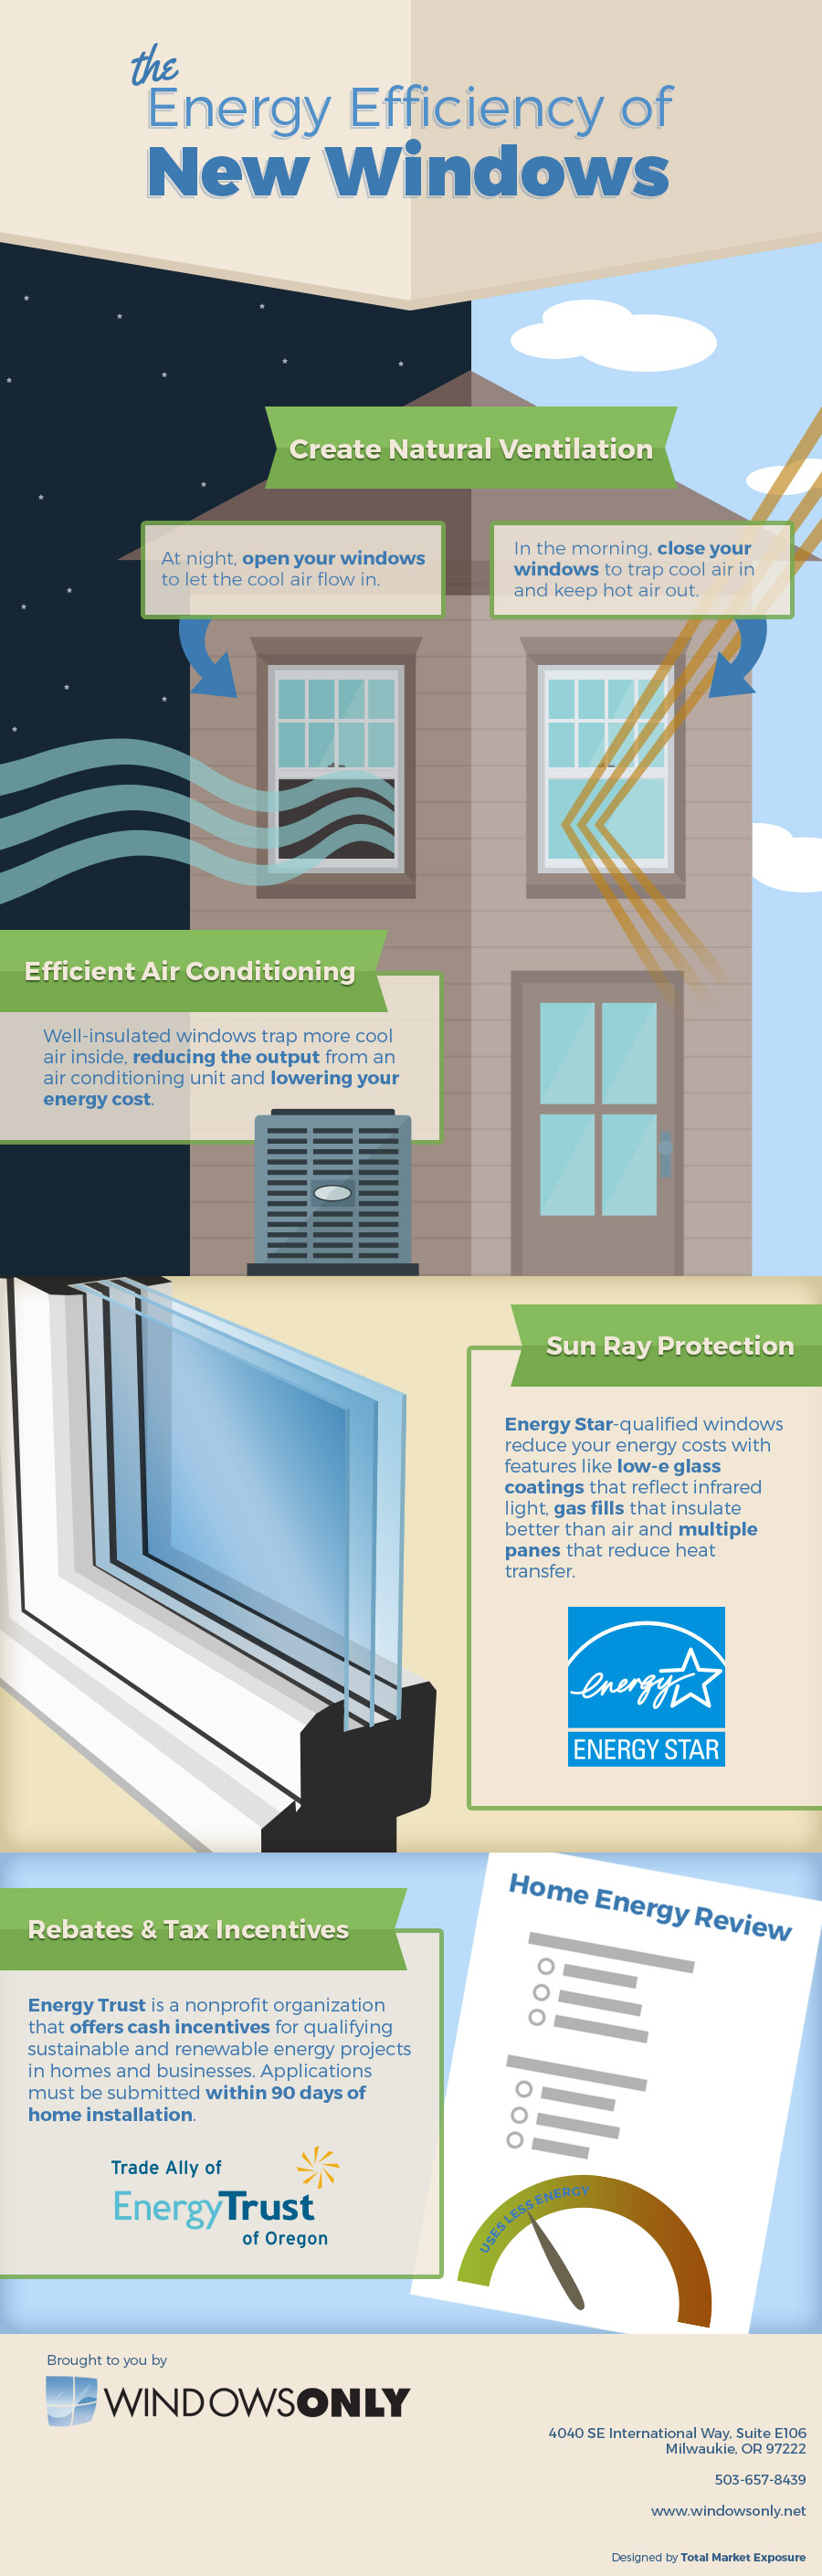 Windows Only Infographic Efficient